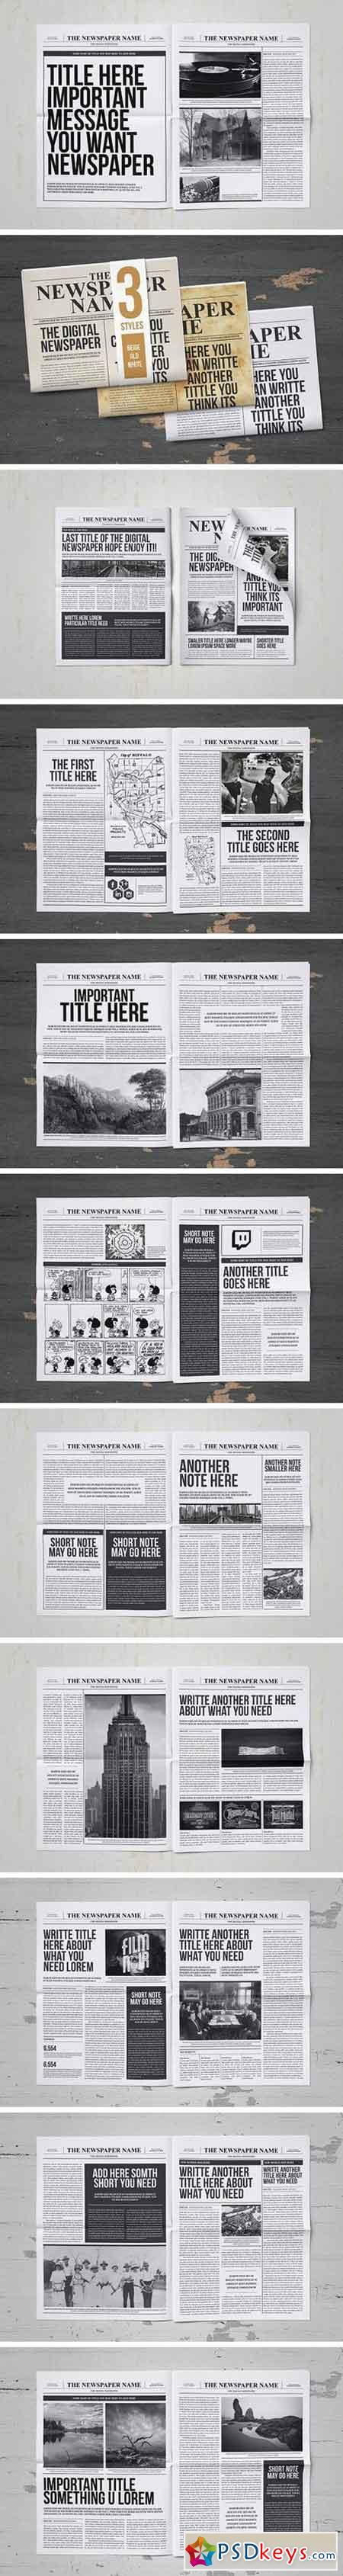 Classy Newspaper Indesign Template 863975 » Free Download Photoshop ...